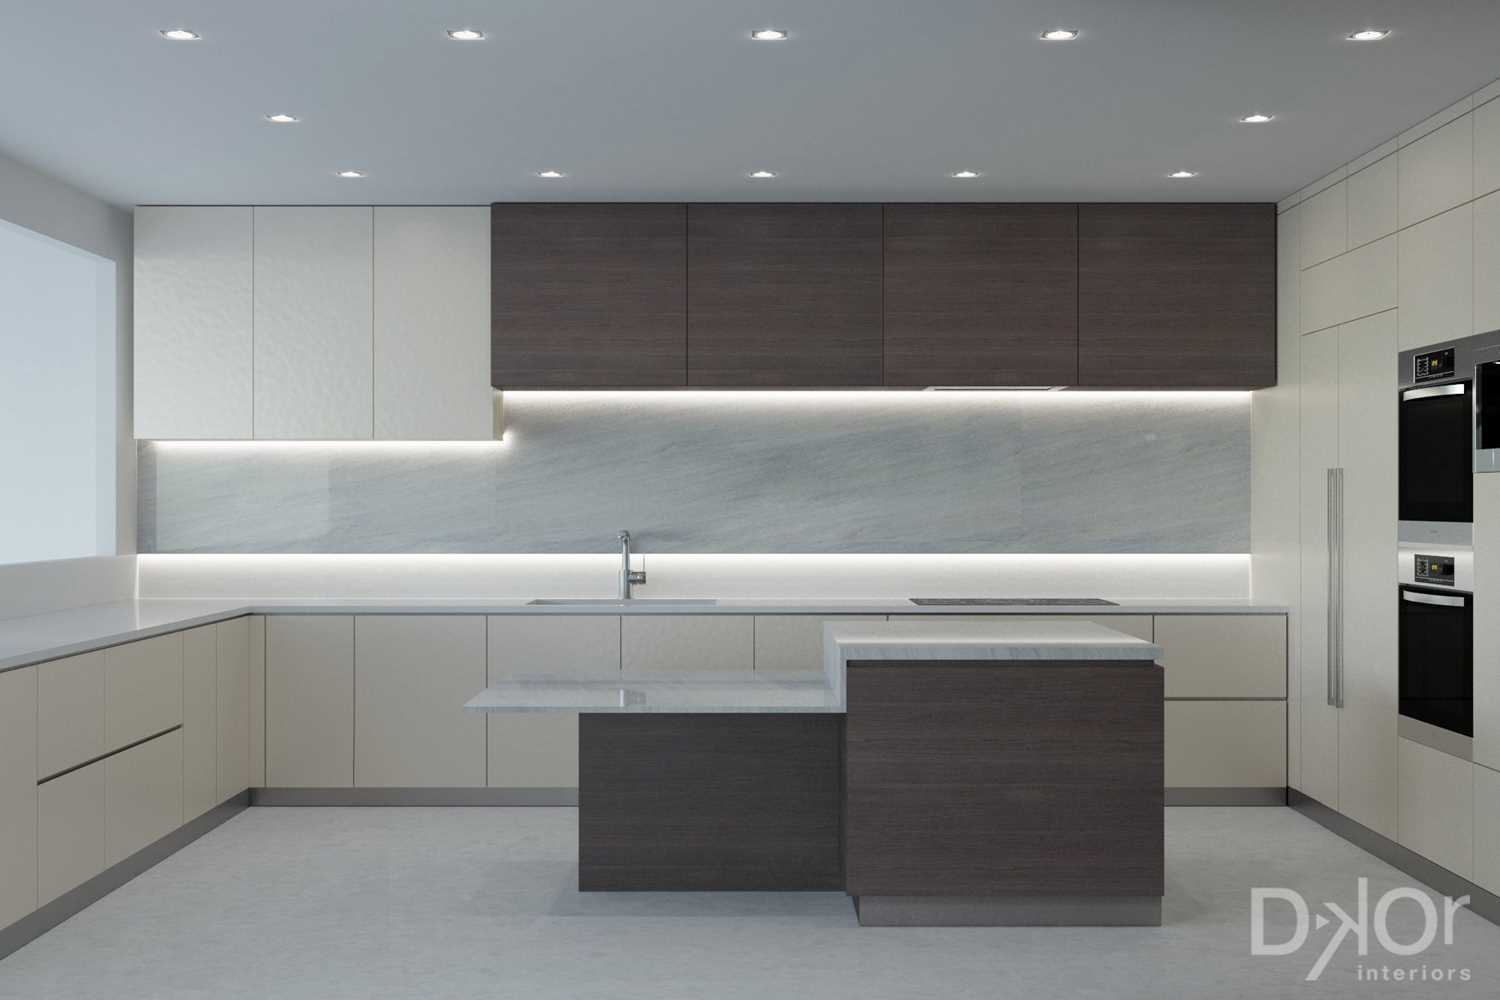 Modern Chateau - Residential Interior Design From DKOR Interiors